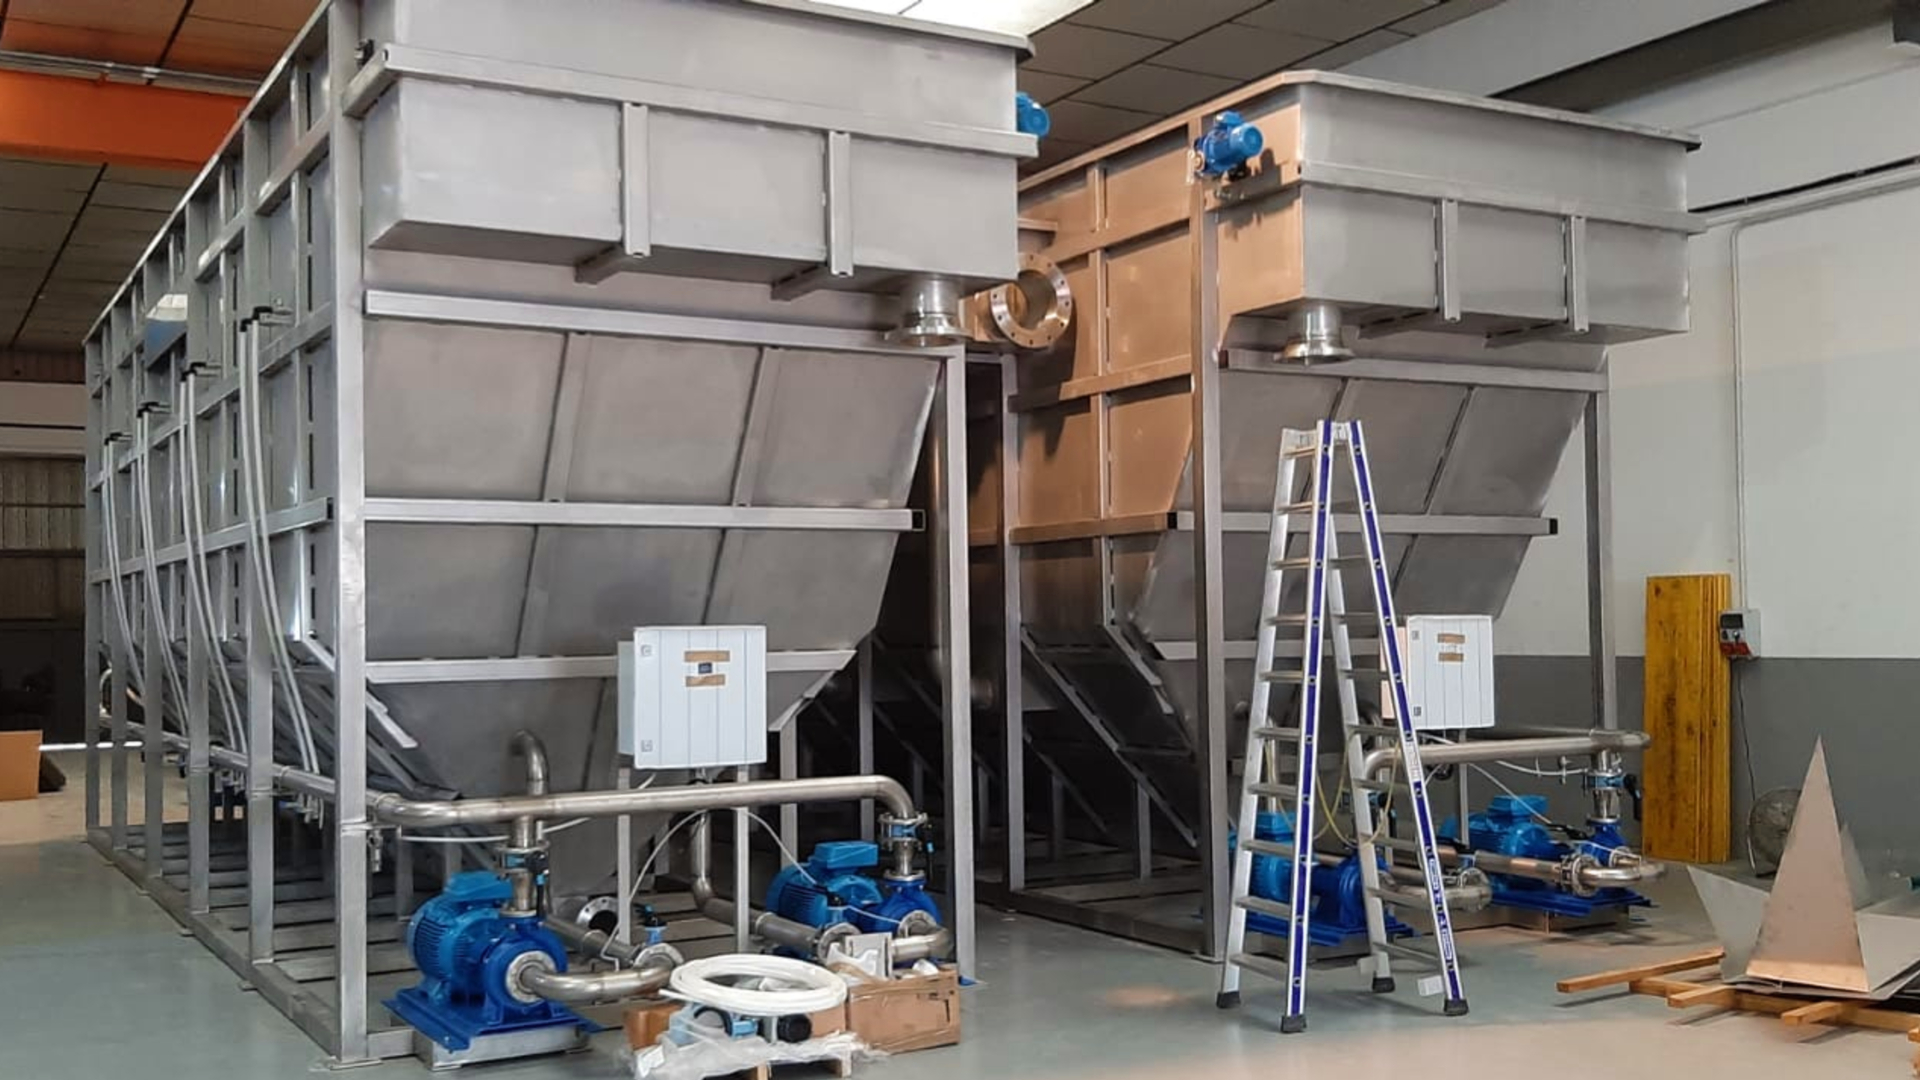 Two FPBC DAF clarifiers inside at the manufacturing plant.